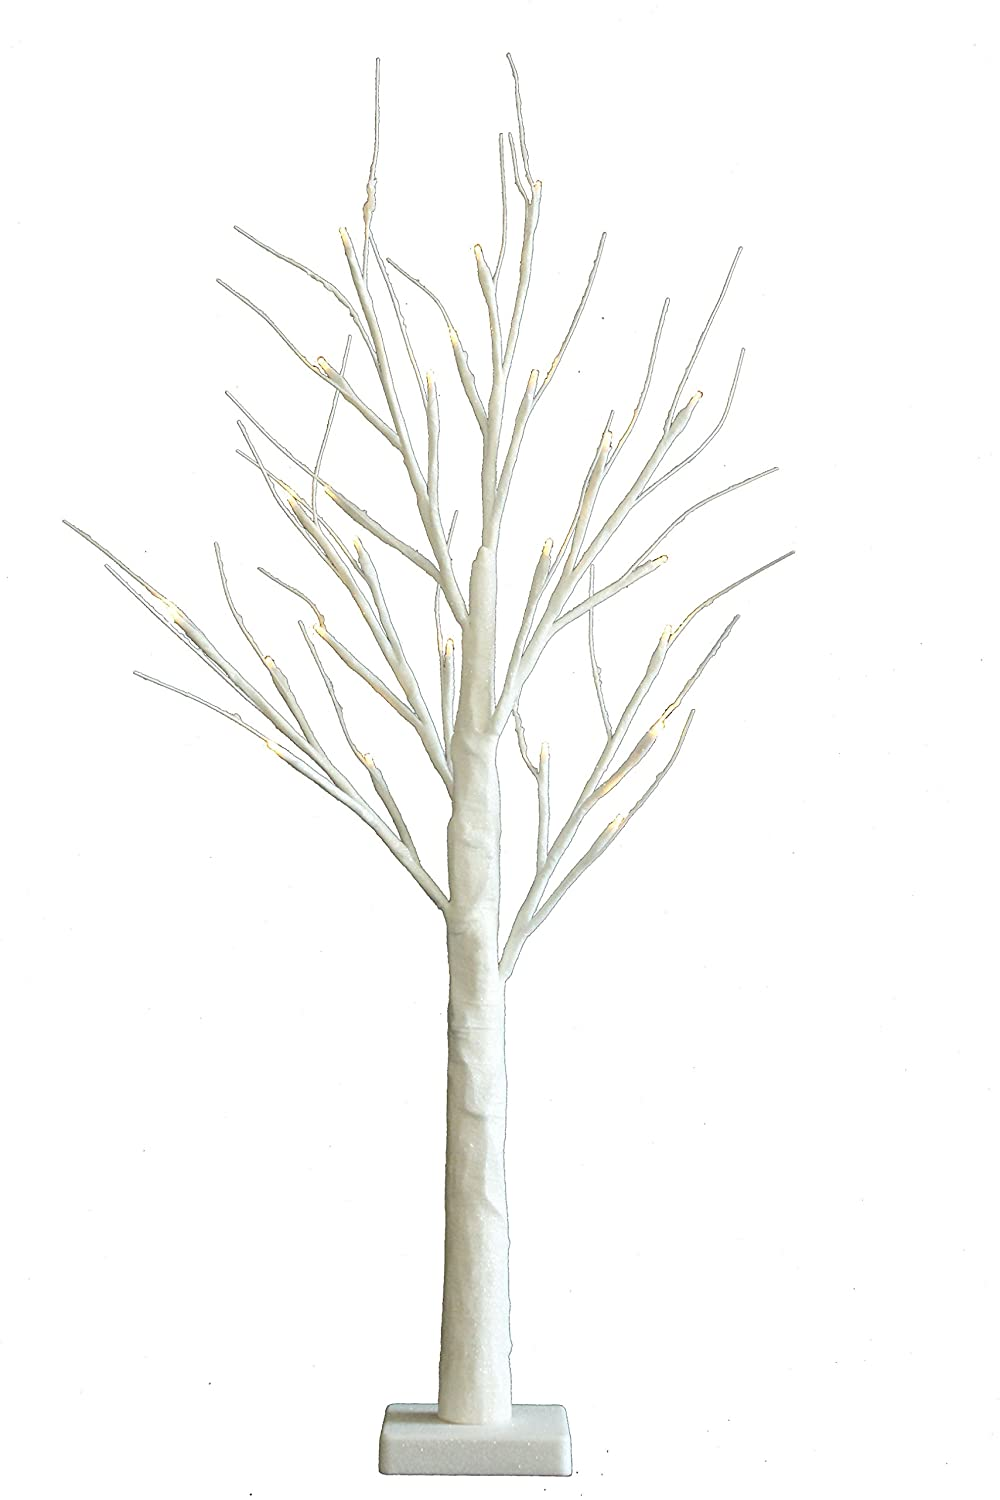 2ft/70cm White Sparkle Christmas Twig Tree Pre-Lit 24 LEDS Battery Operated (16 pack of baubles included) Jaymark Products